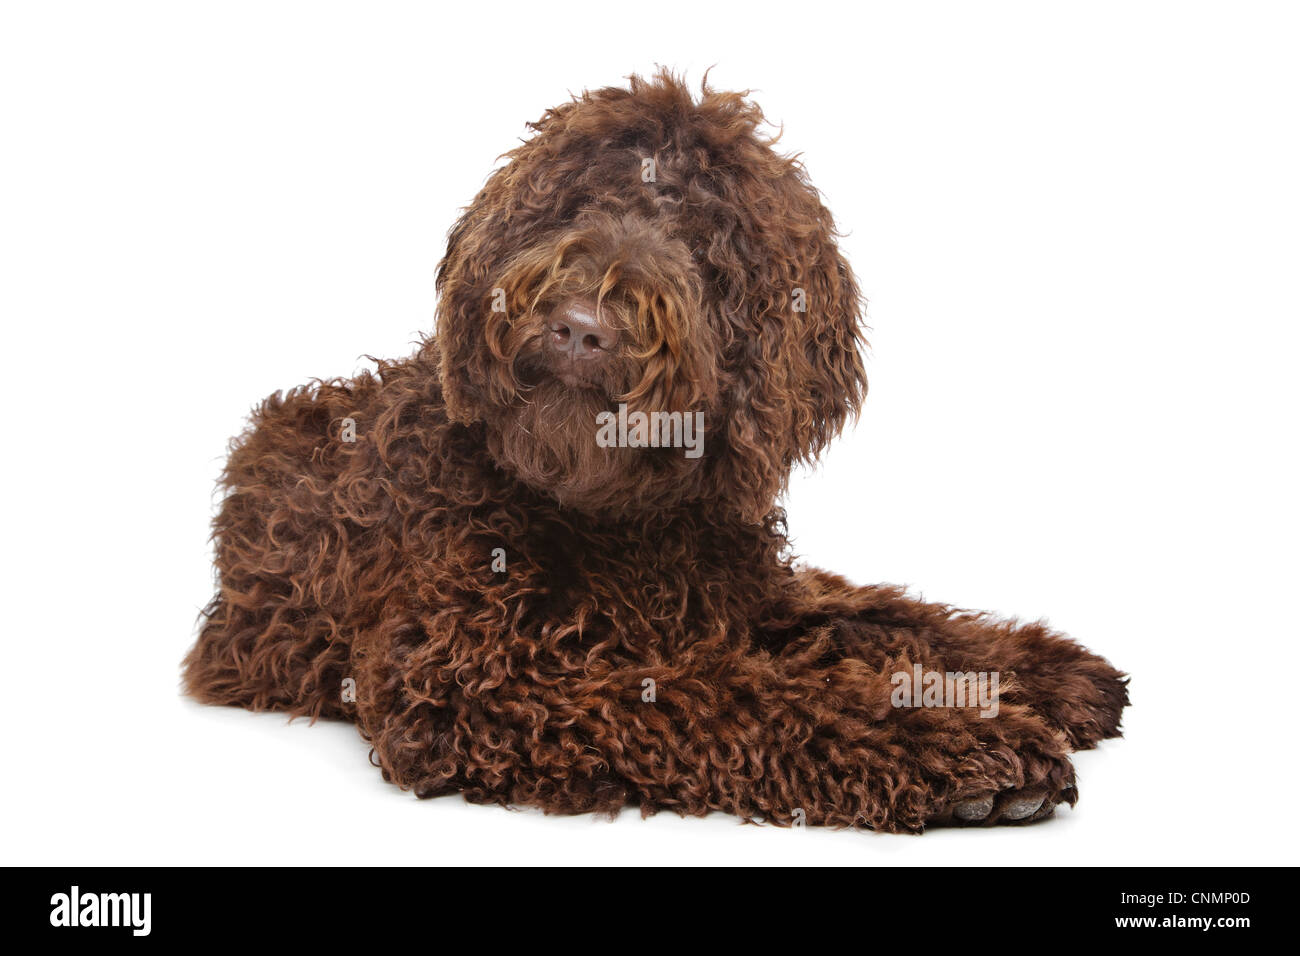 Brown Labradoodle in front of a white background - Stock Image